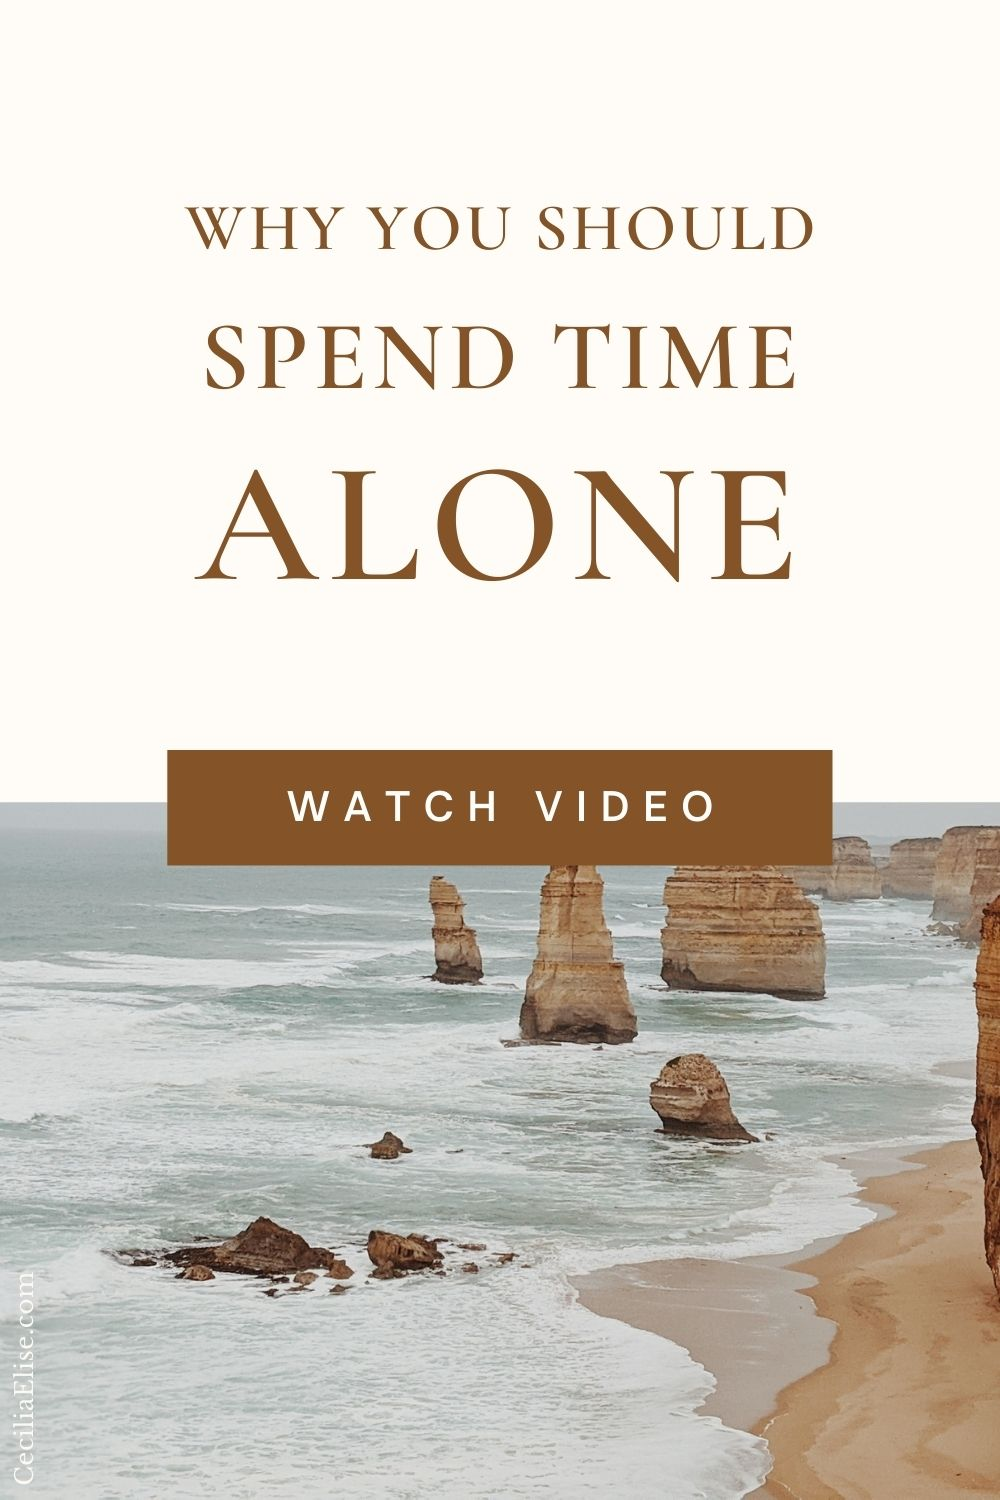 Why you should spend time alone